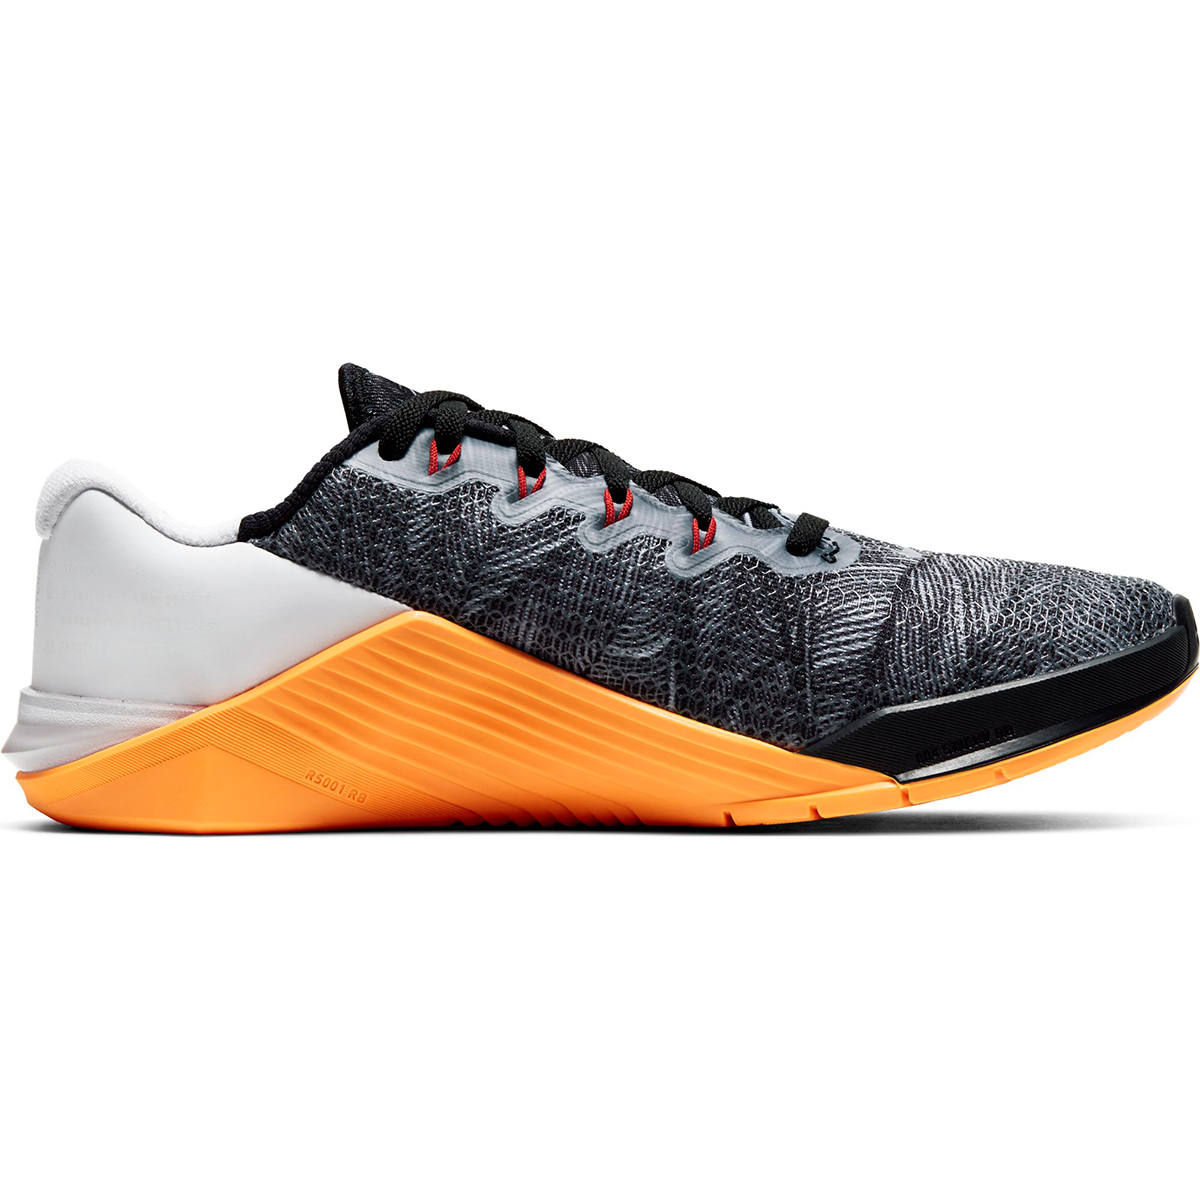 Women's Nike Metcon 5 Training Shoes - Color: Black/White/Laser Orange/Team Orange (Regular Width) - Size: 5, Black/White/Laser Orange/Team Orange, large, image 1